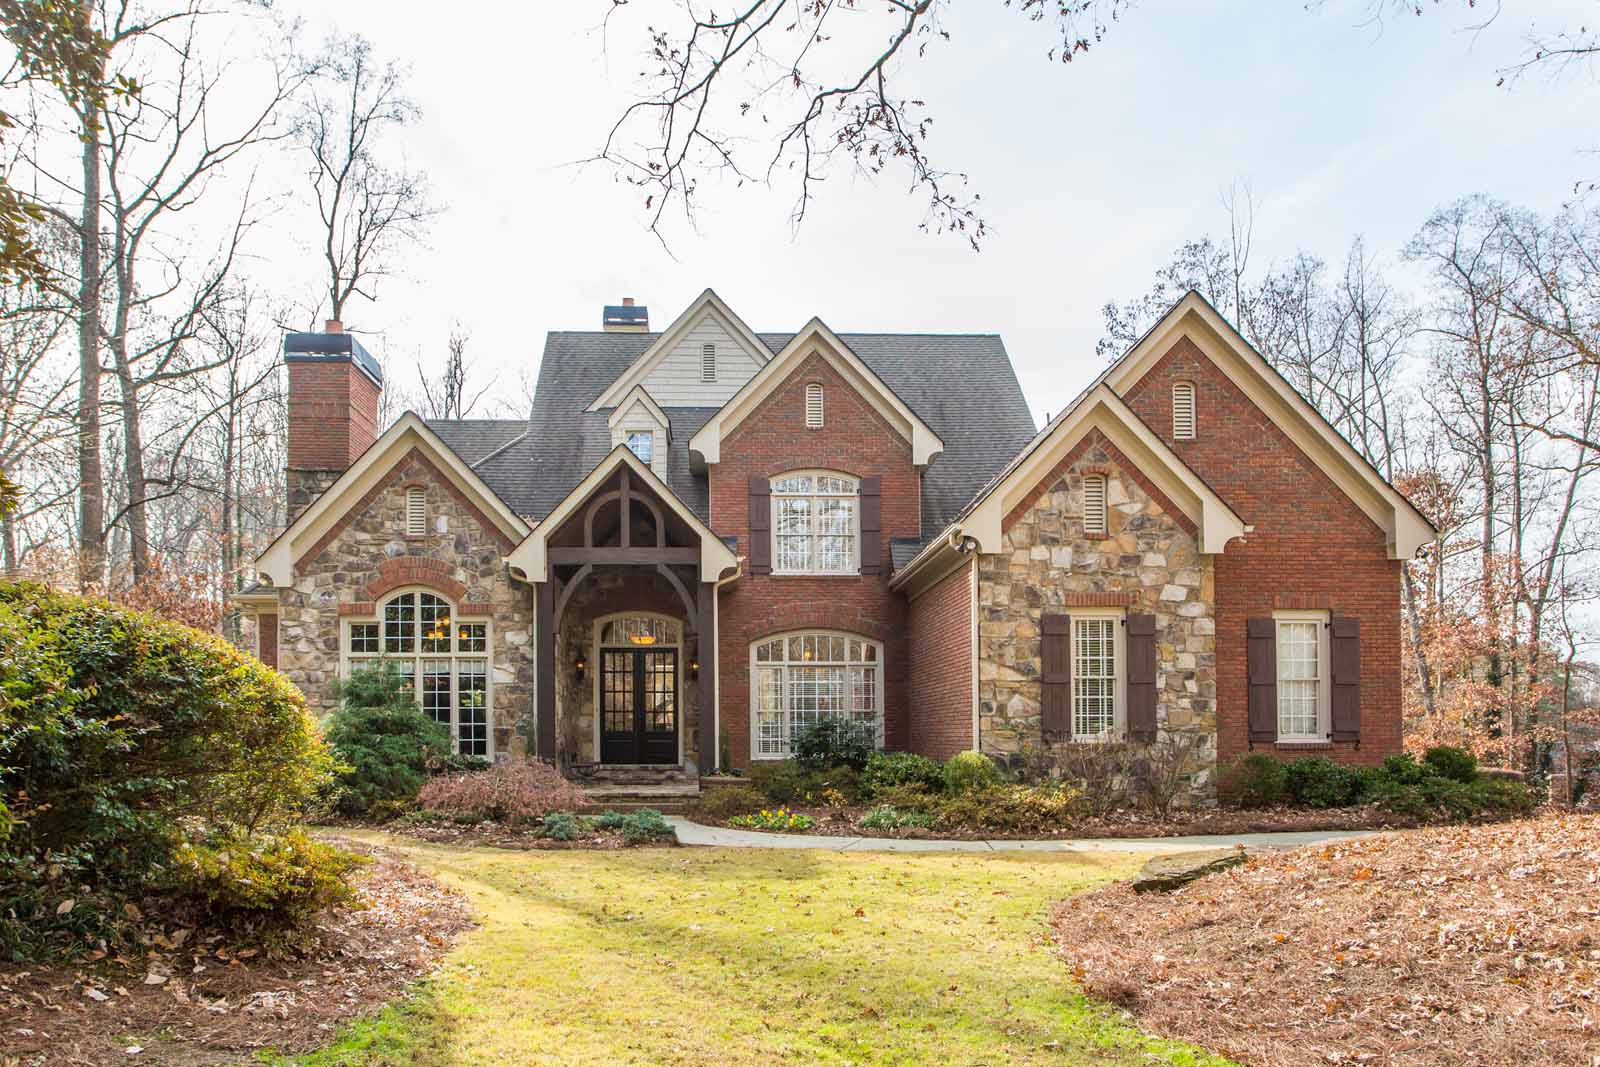 Single Family Home for Sale at Custom Chastain Living 5000 Powers Ferry Road Sandy Springs, Georgia 30327 United States